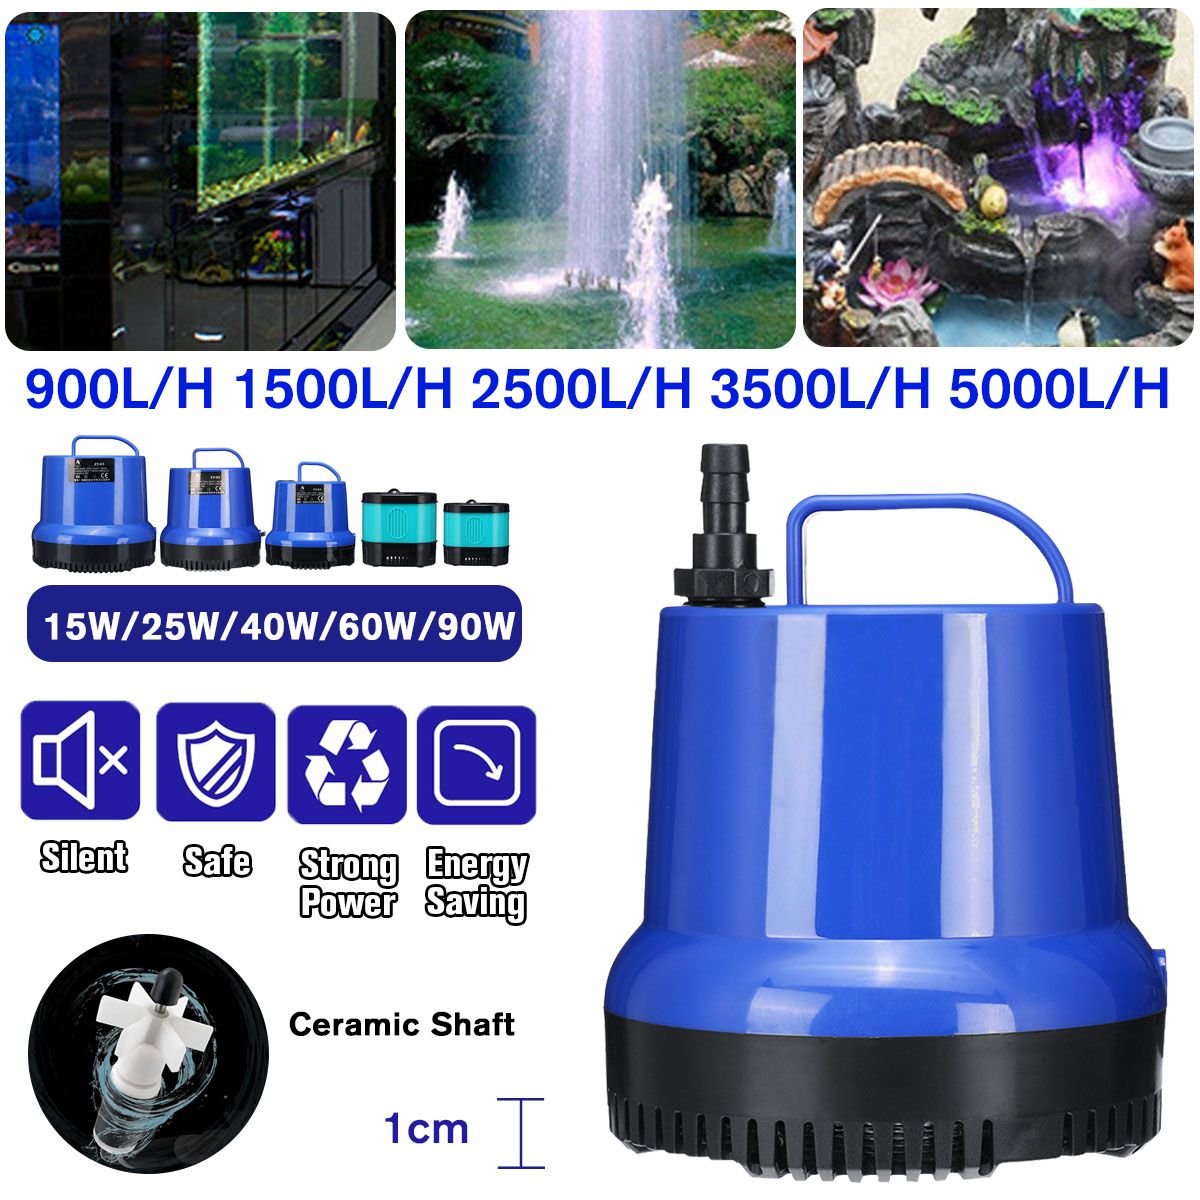 15/<font><b>25</b></font>/40/60/90W Ultra-Quiet Submersible Water Fountain Pump Filter Fish Pond Aquarium Water Pump Fish Tank Fountain image